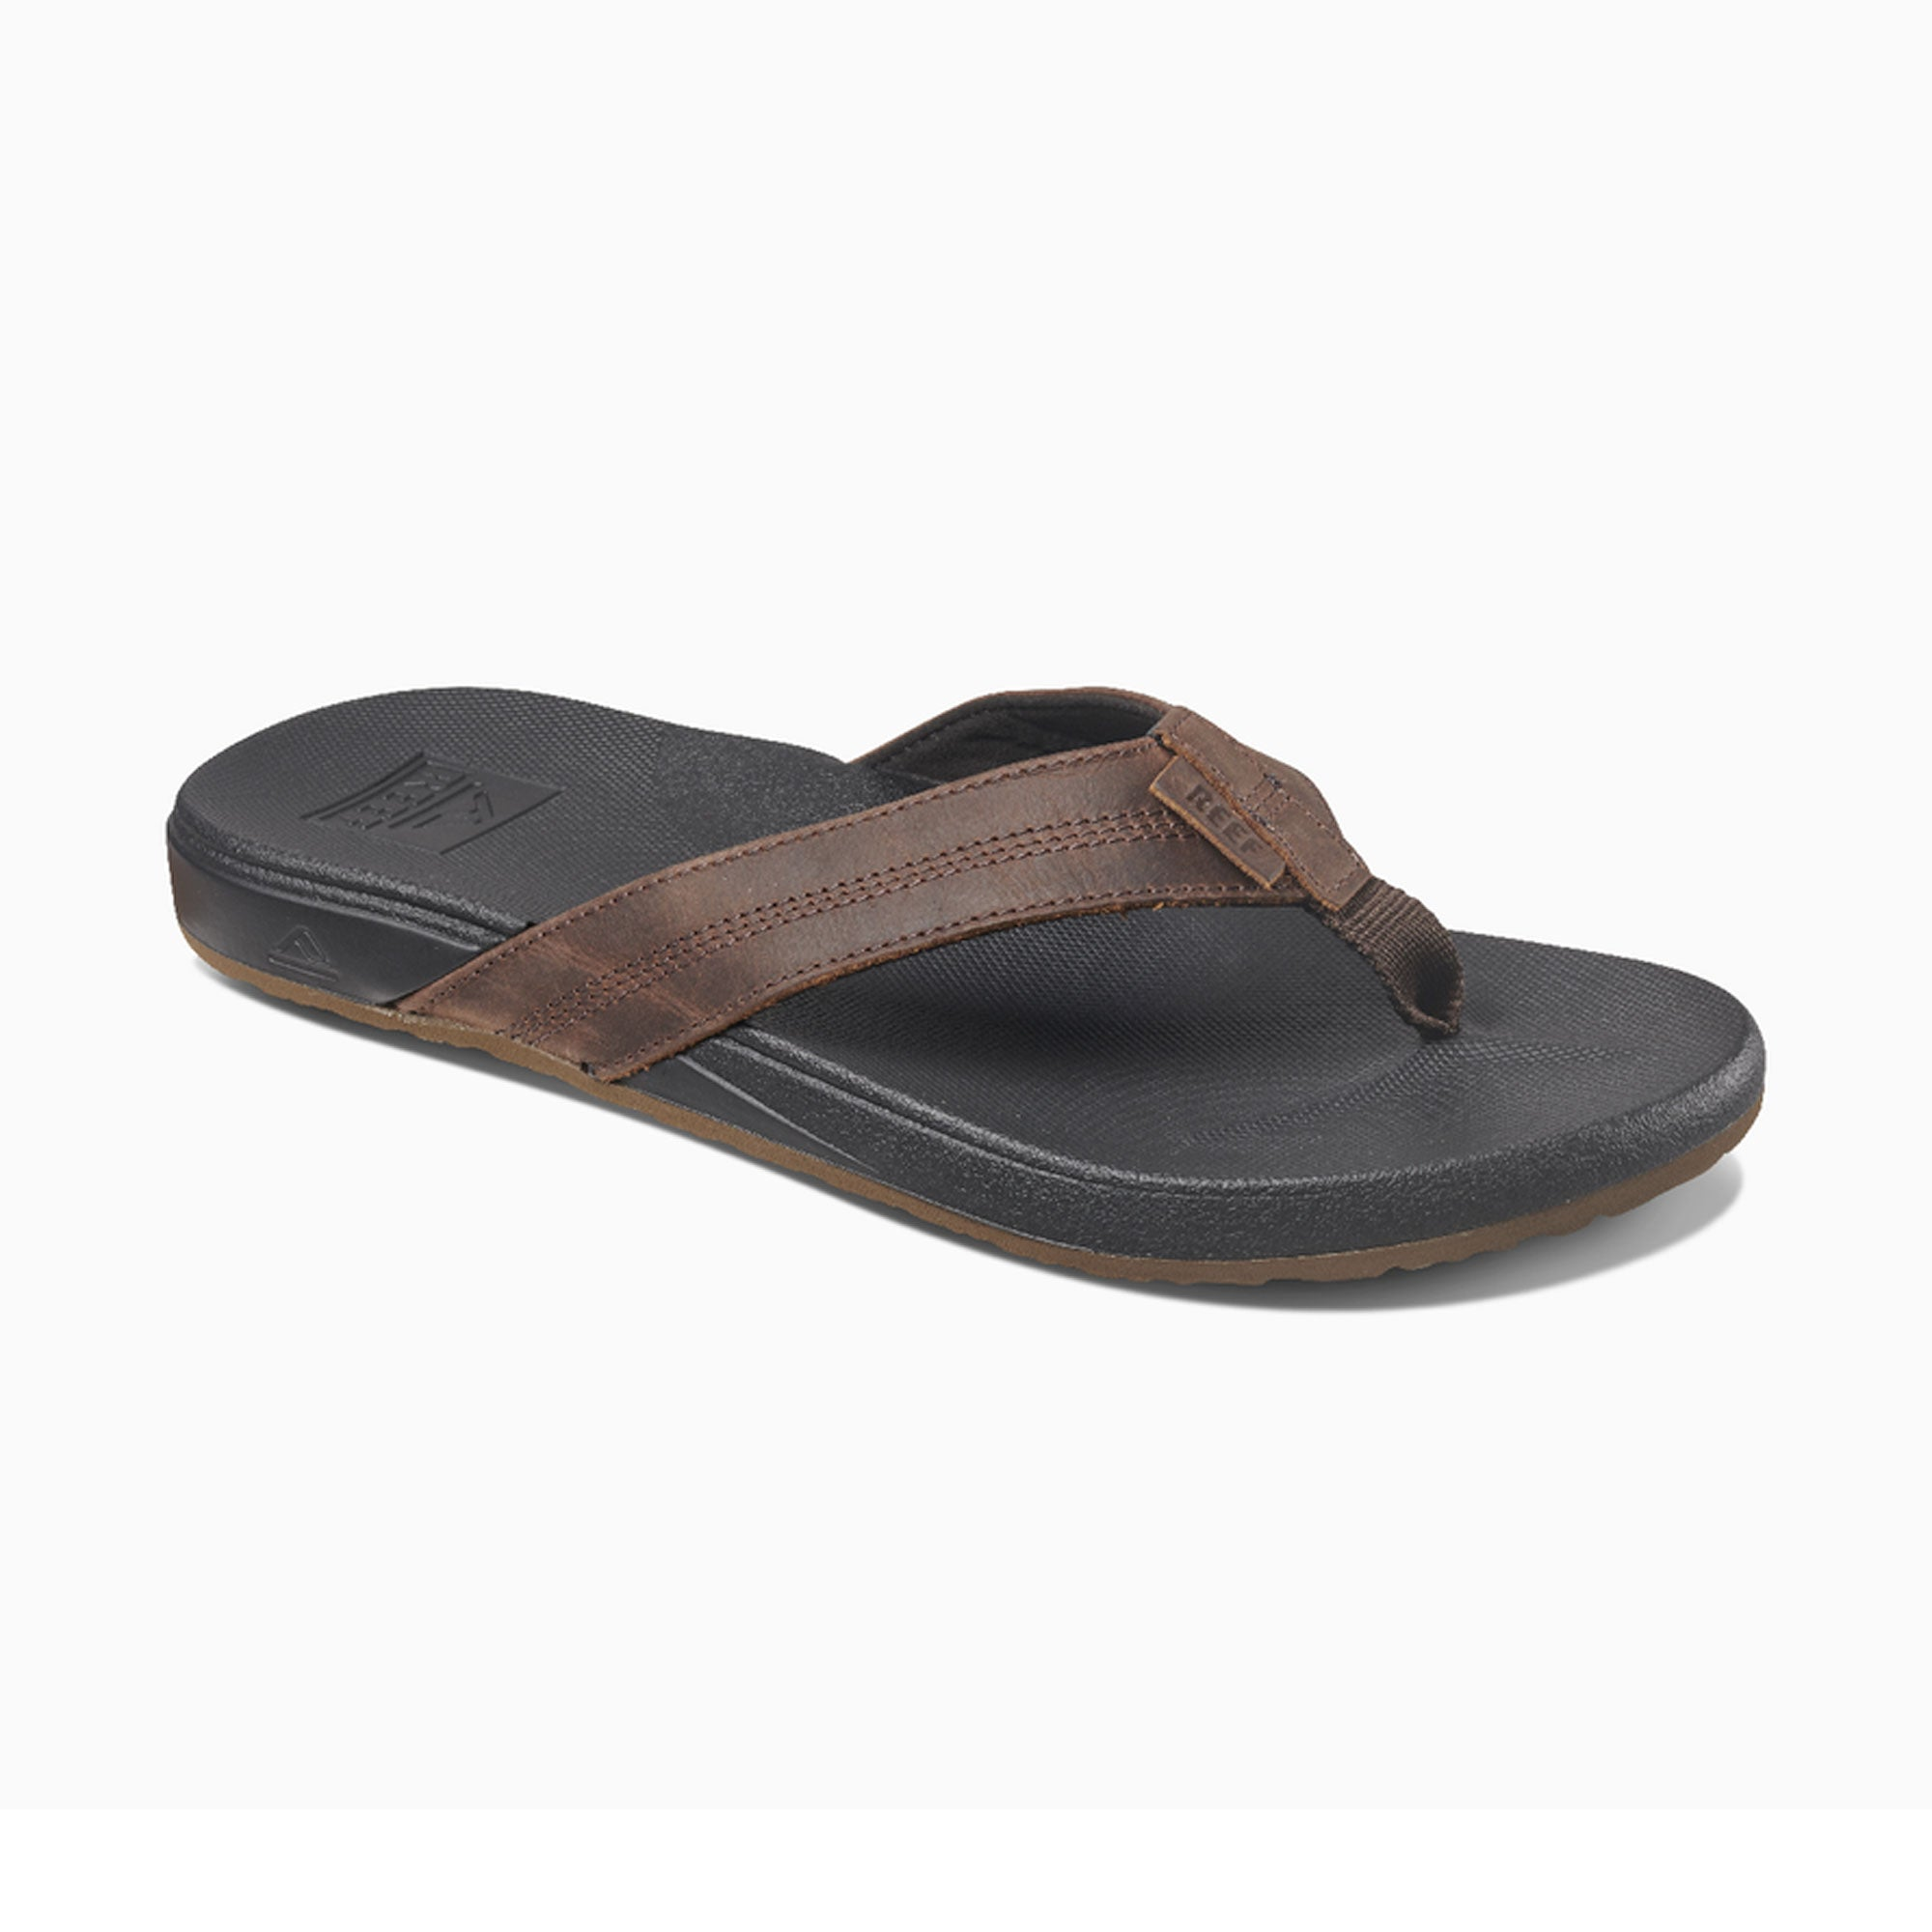 Reef Cushion Phantom LE Men's Sandals - Brown/Black